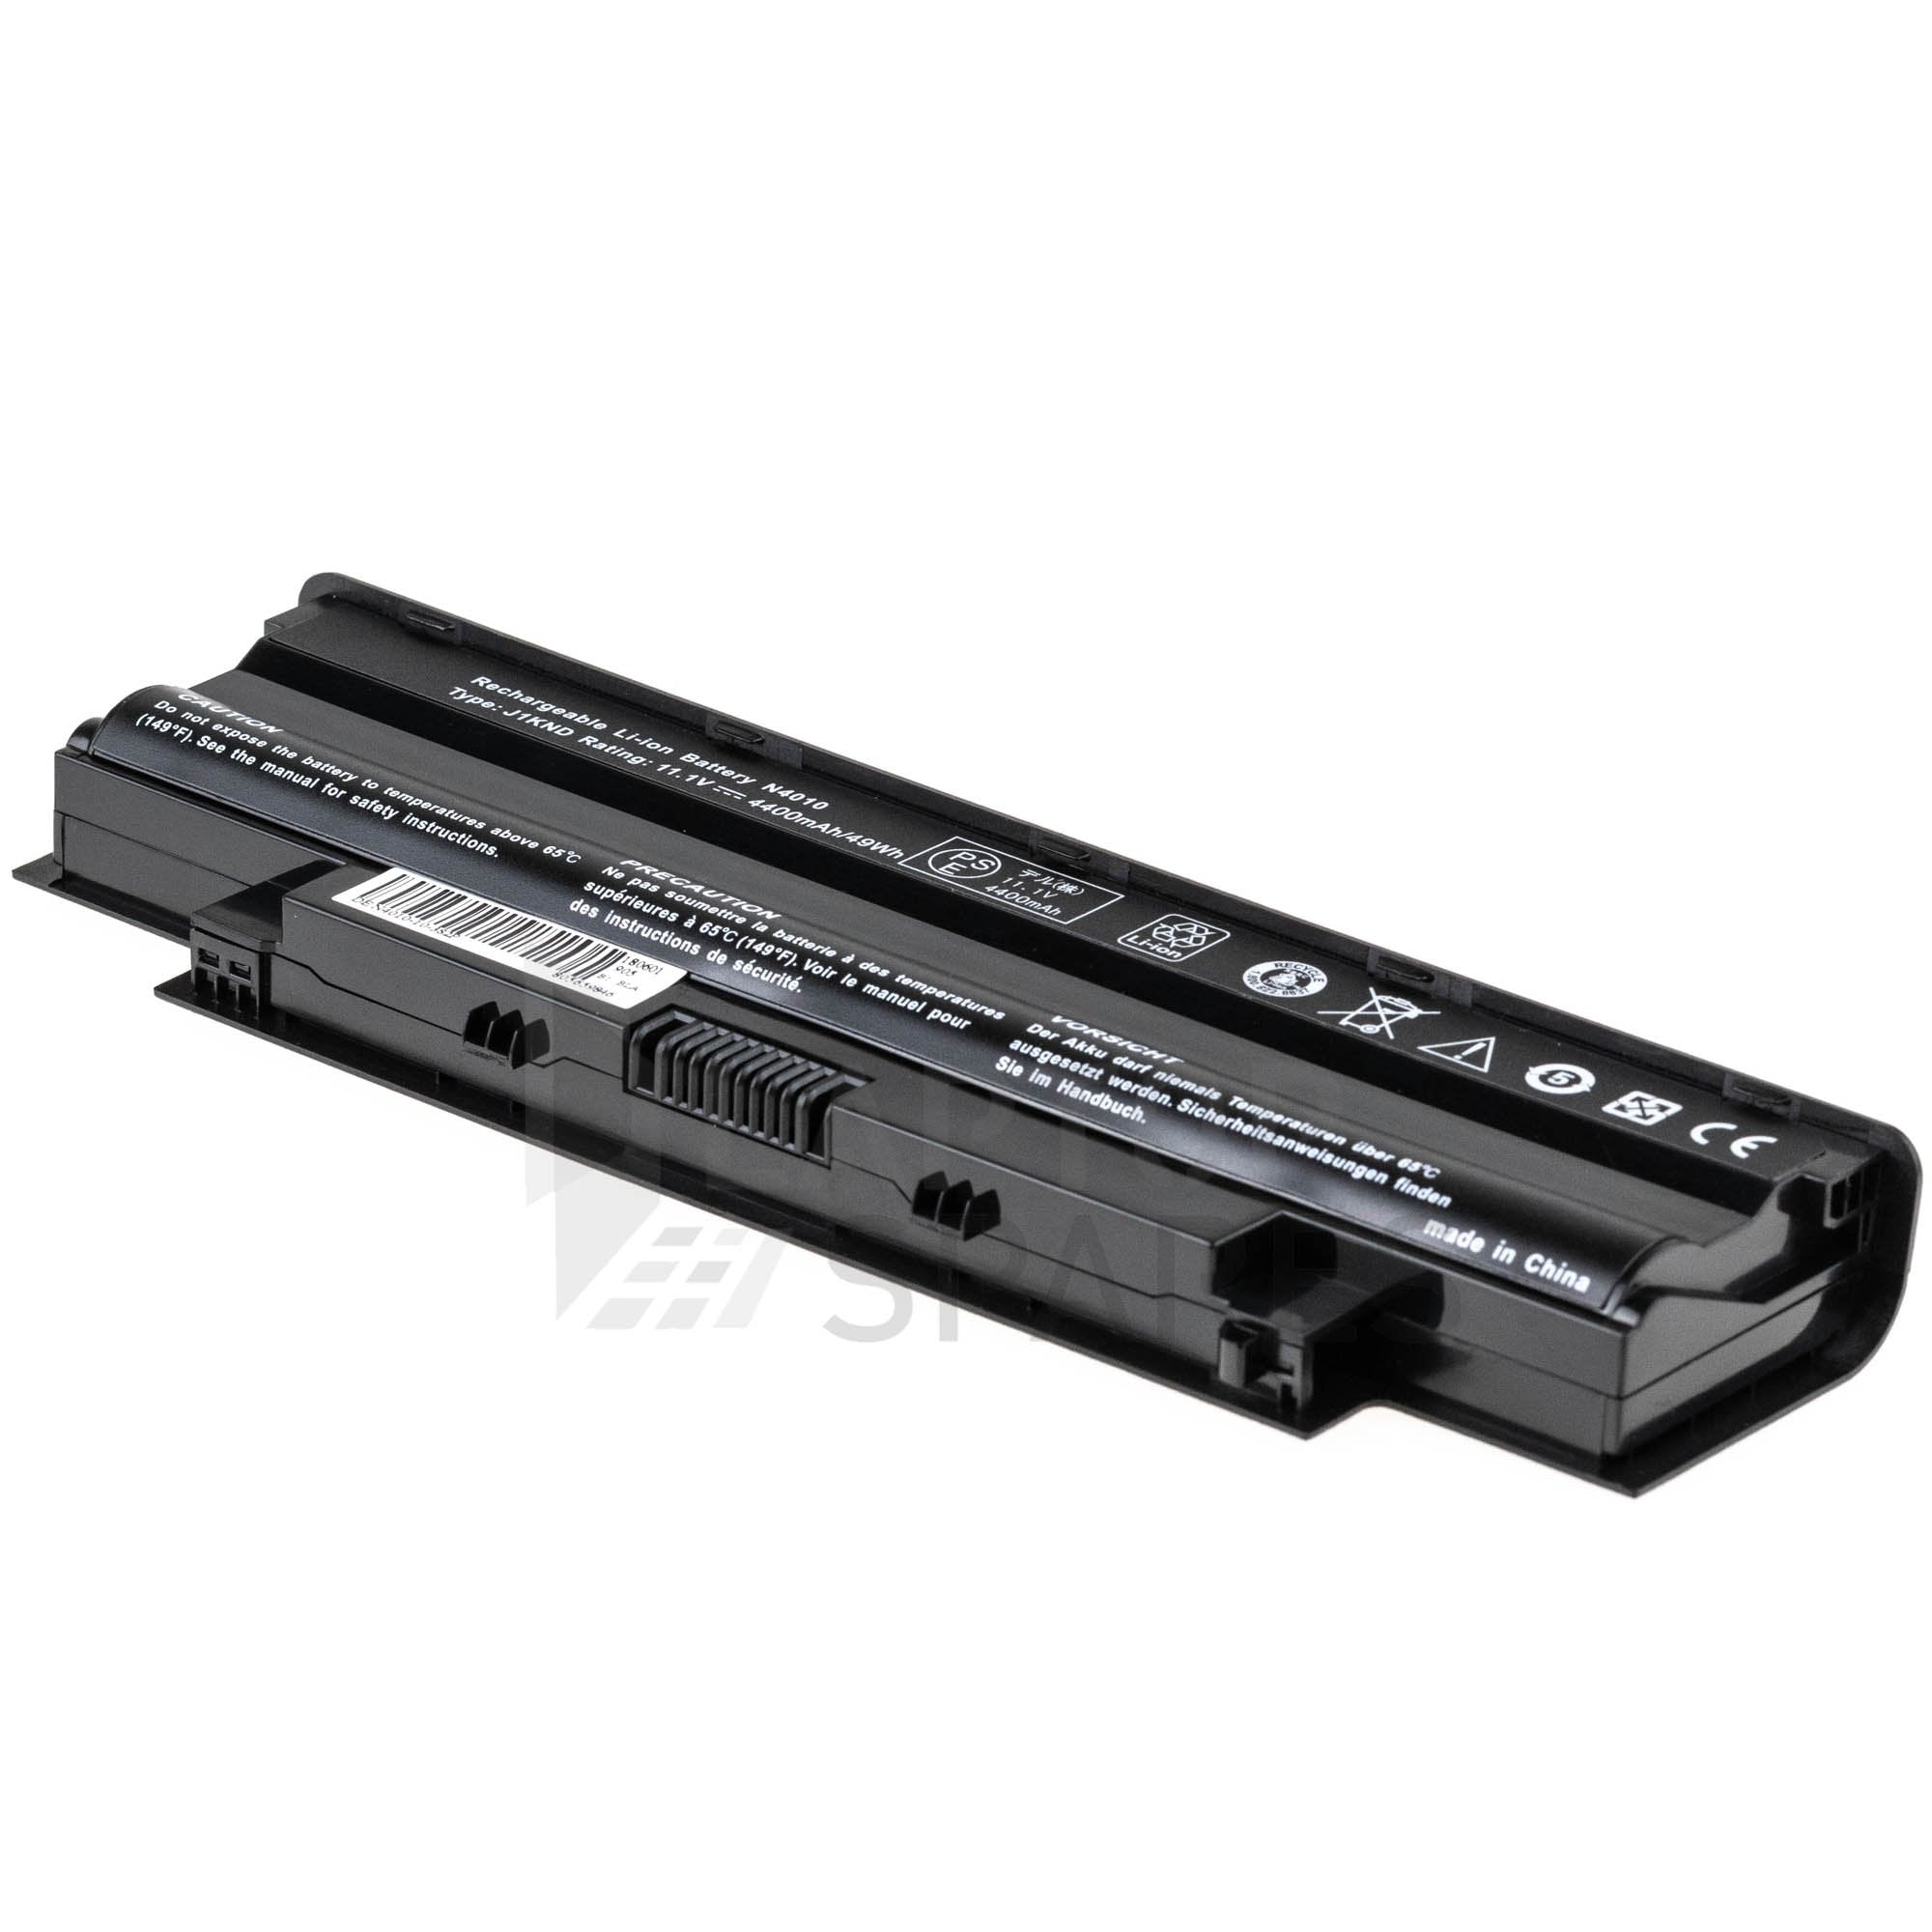 Dell Inspiron M501 4400mAh 6 Cell Battery